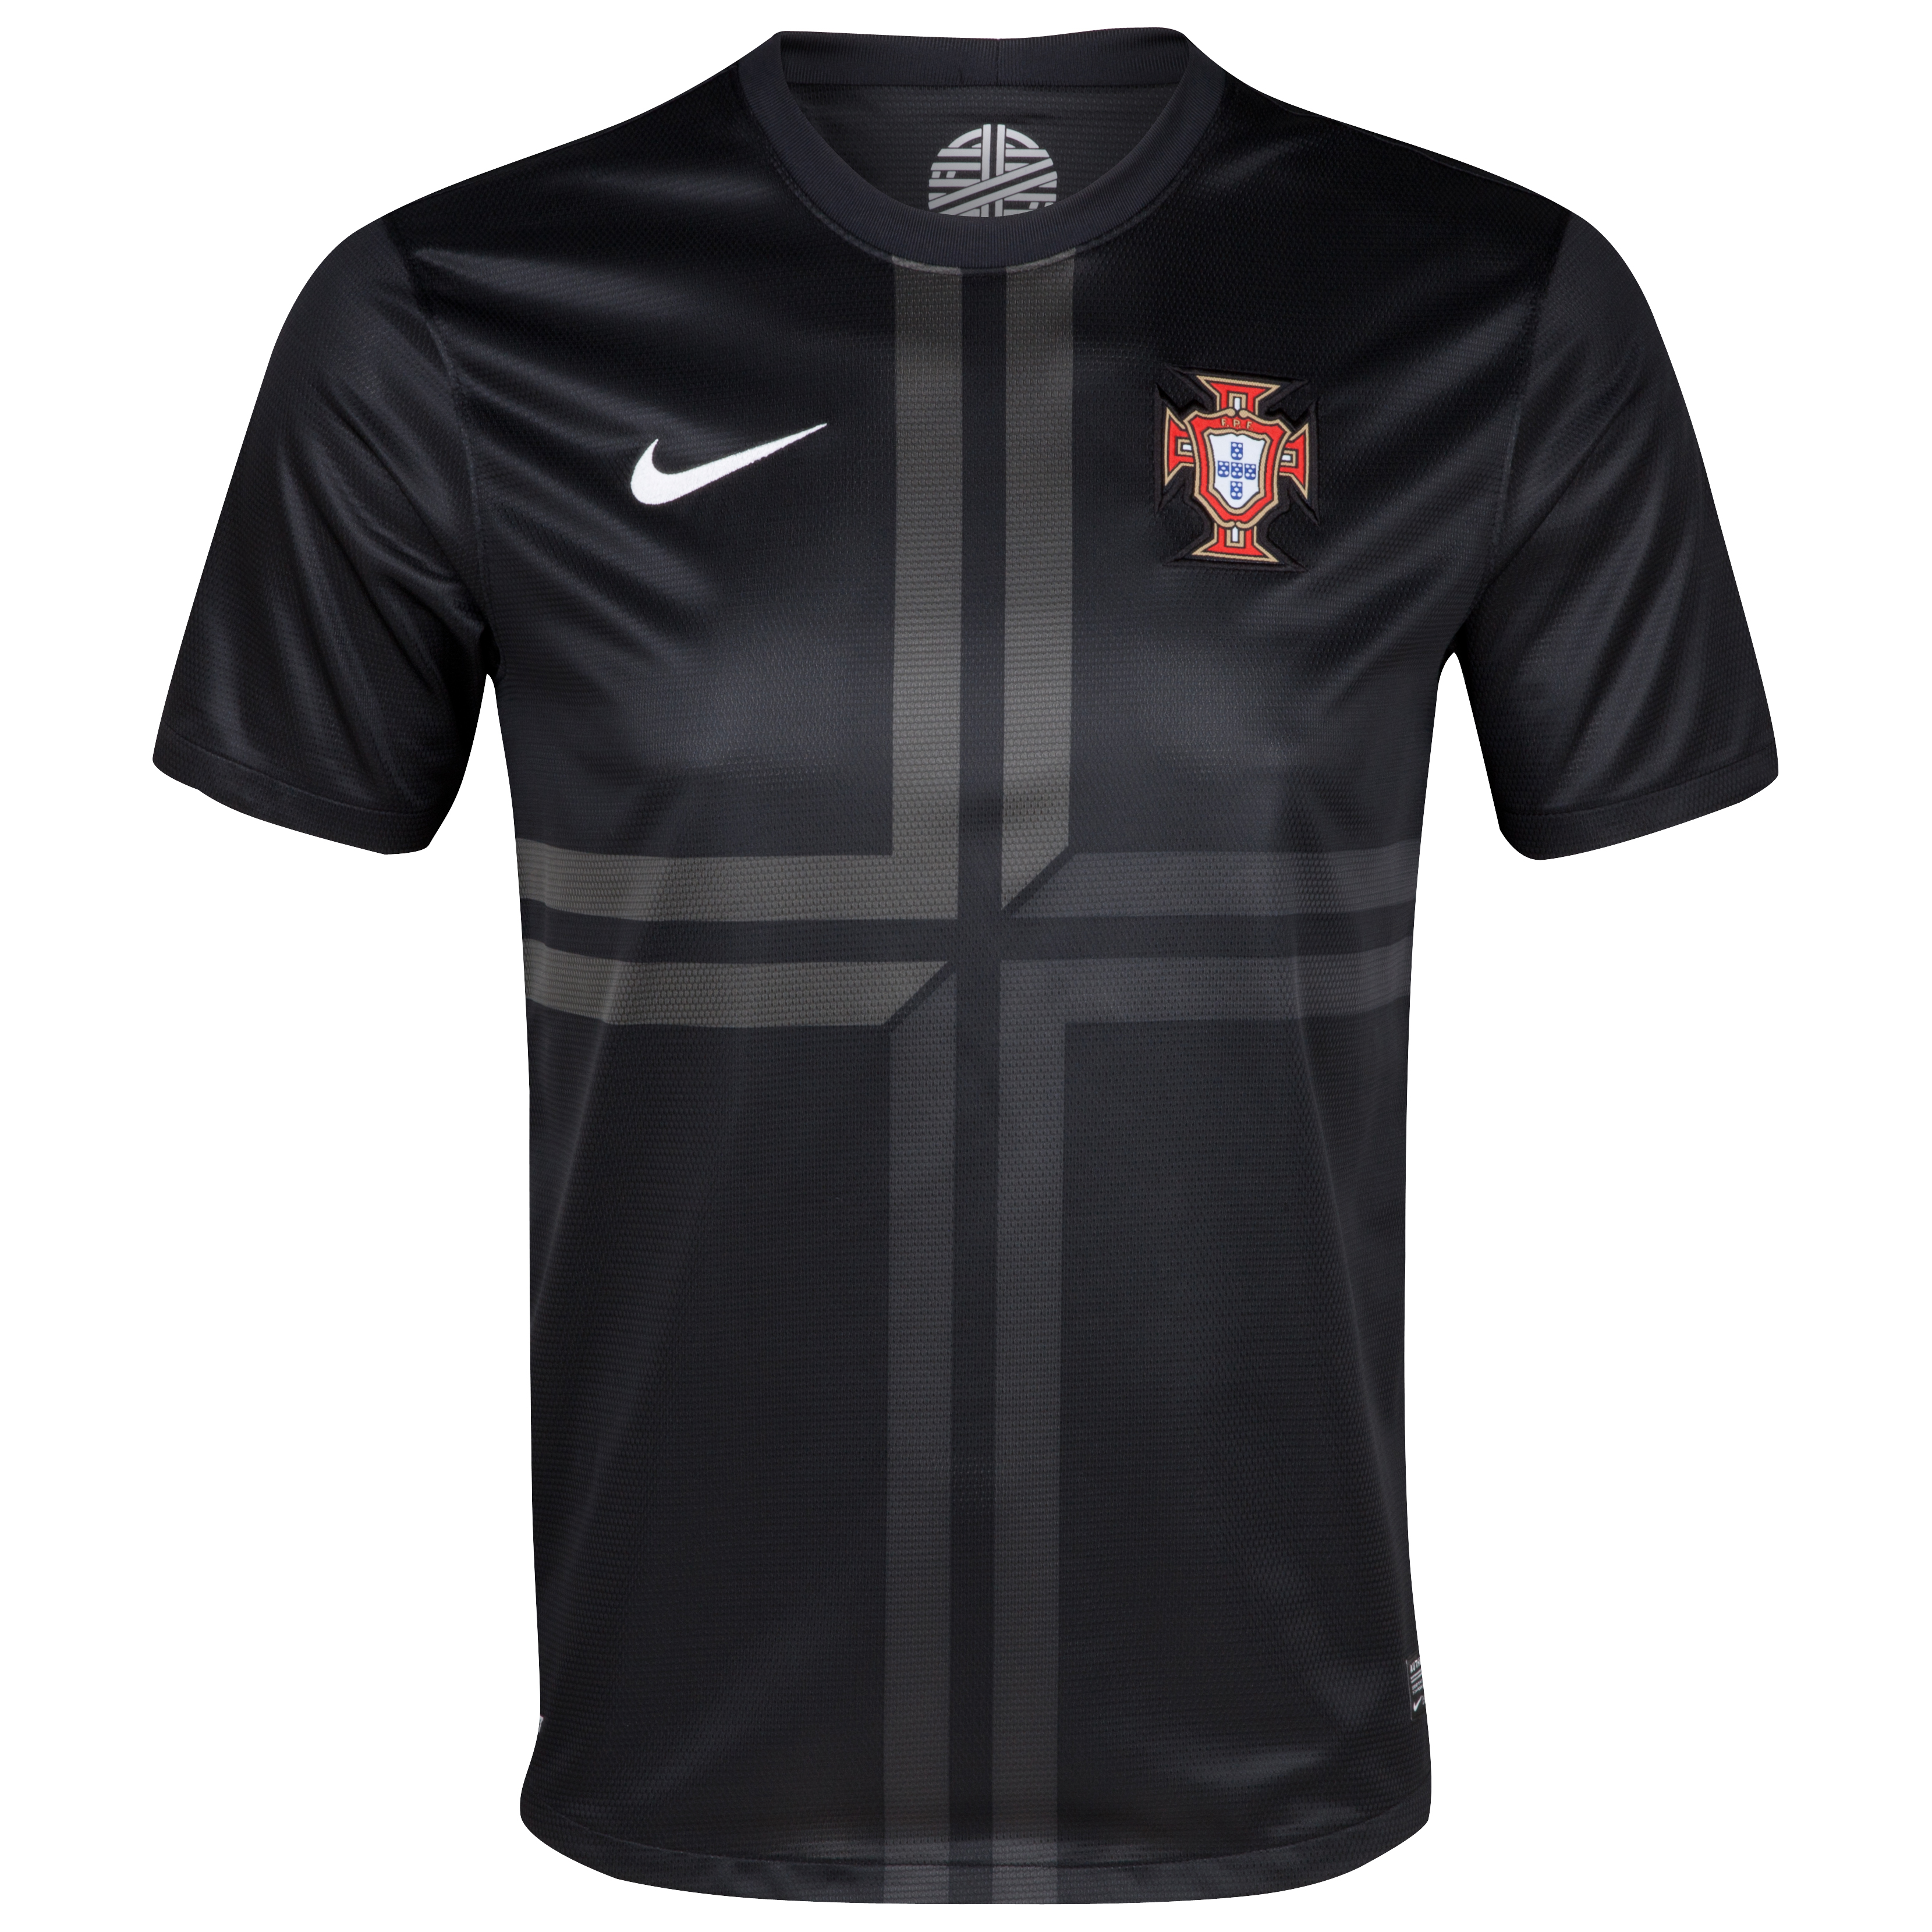 Portugal Away Shirt 2013/14 - Youths